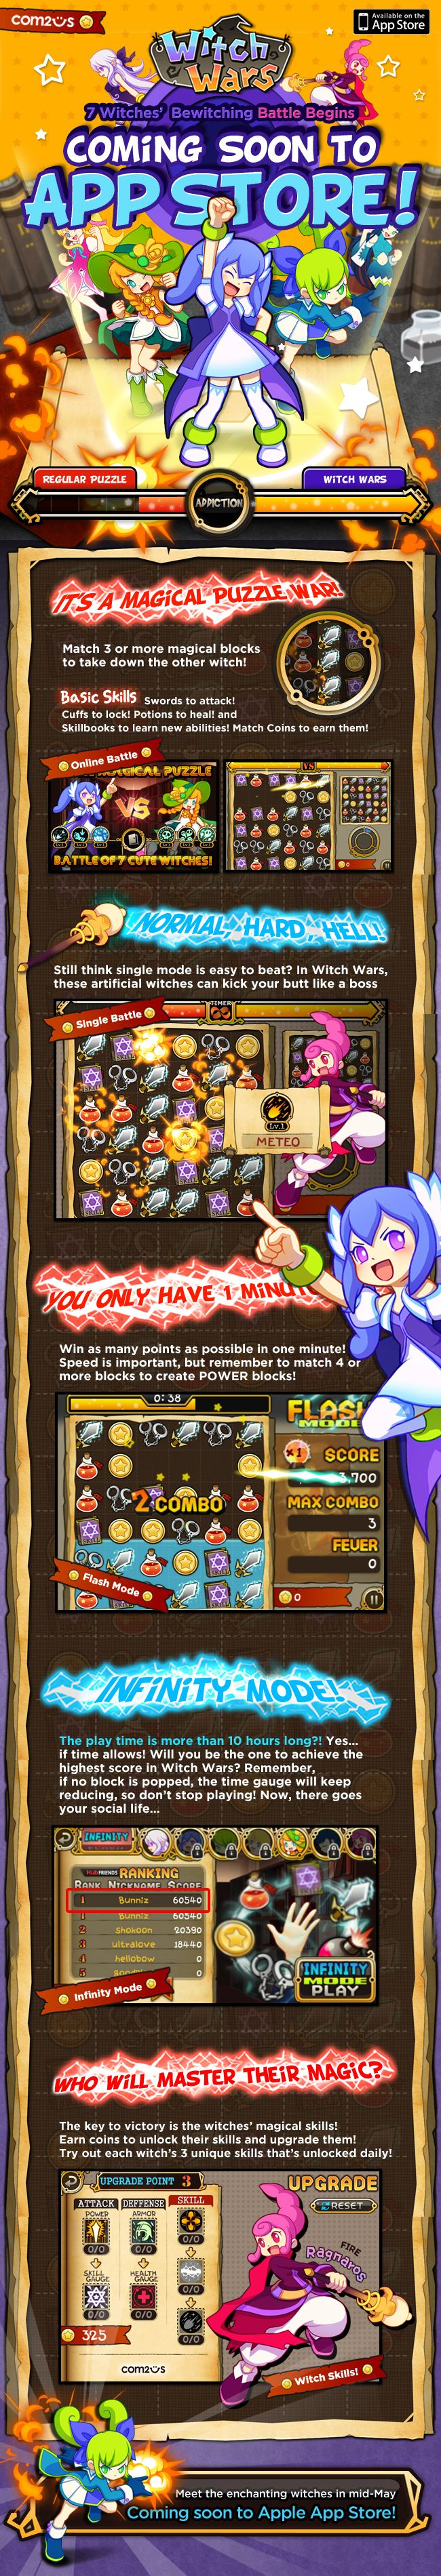 "Learn all about ""Witch Wars"" - Com2uS - iPhone Games, iPod Touch Games, Android Games 